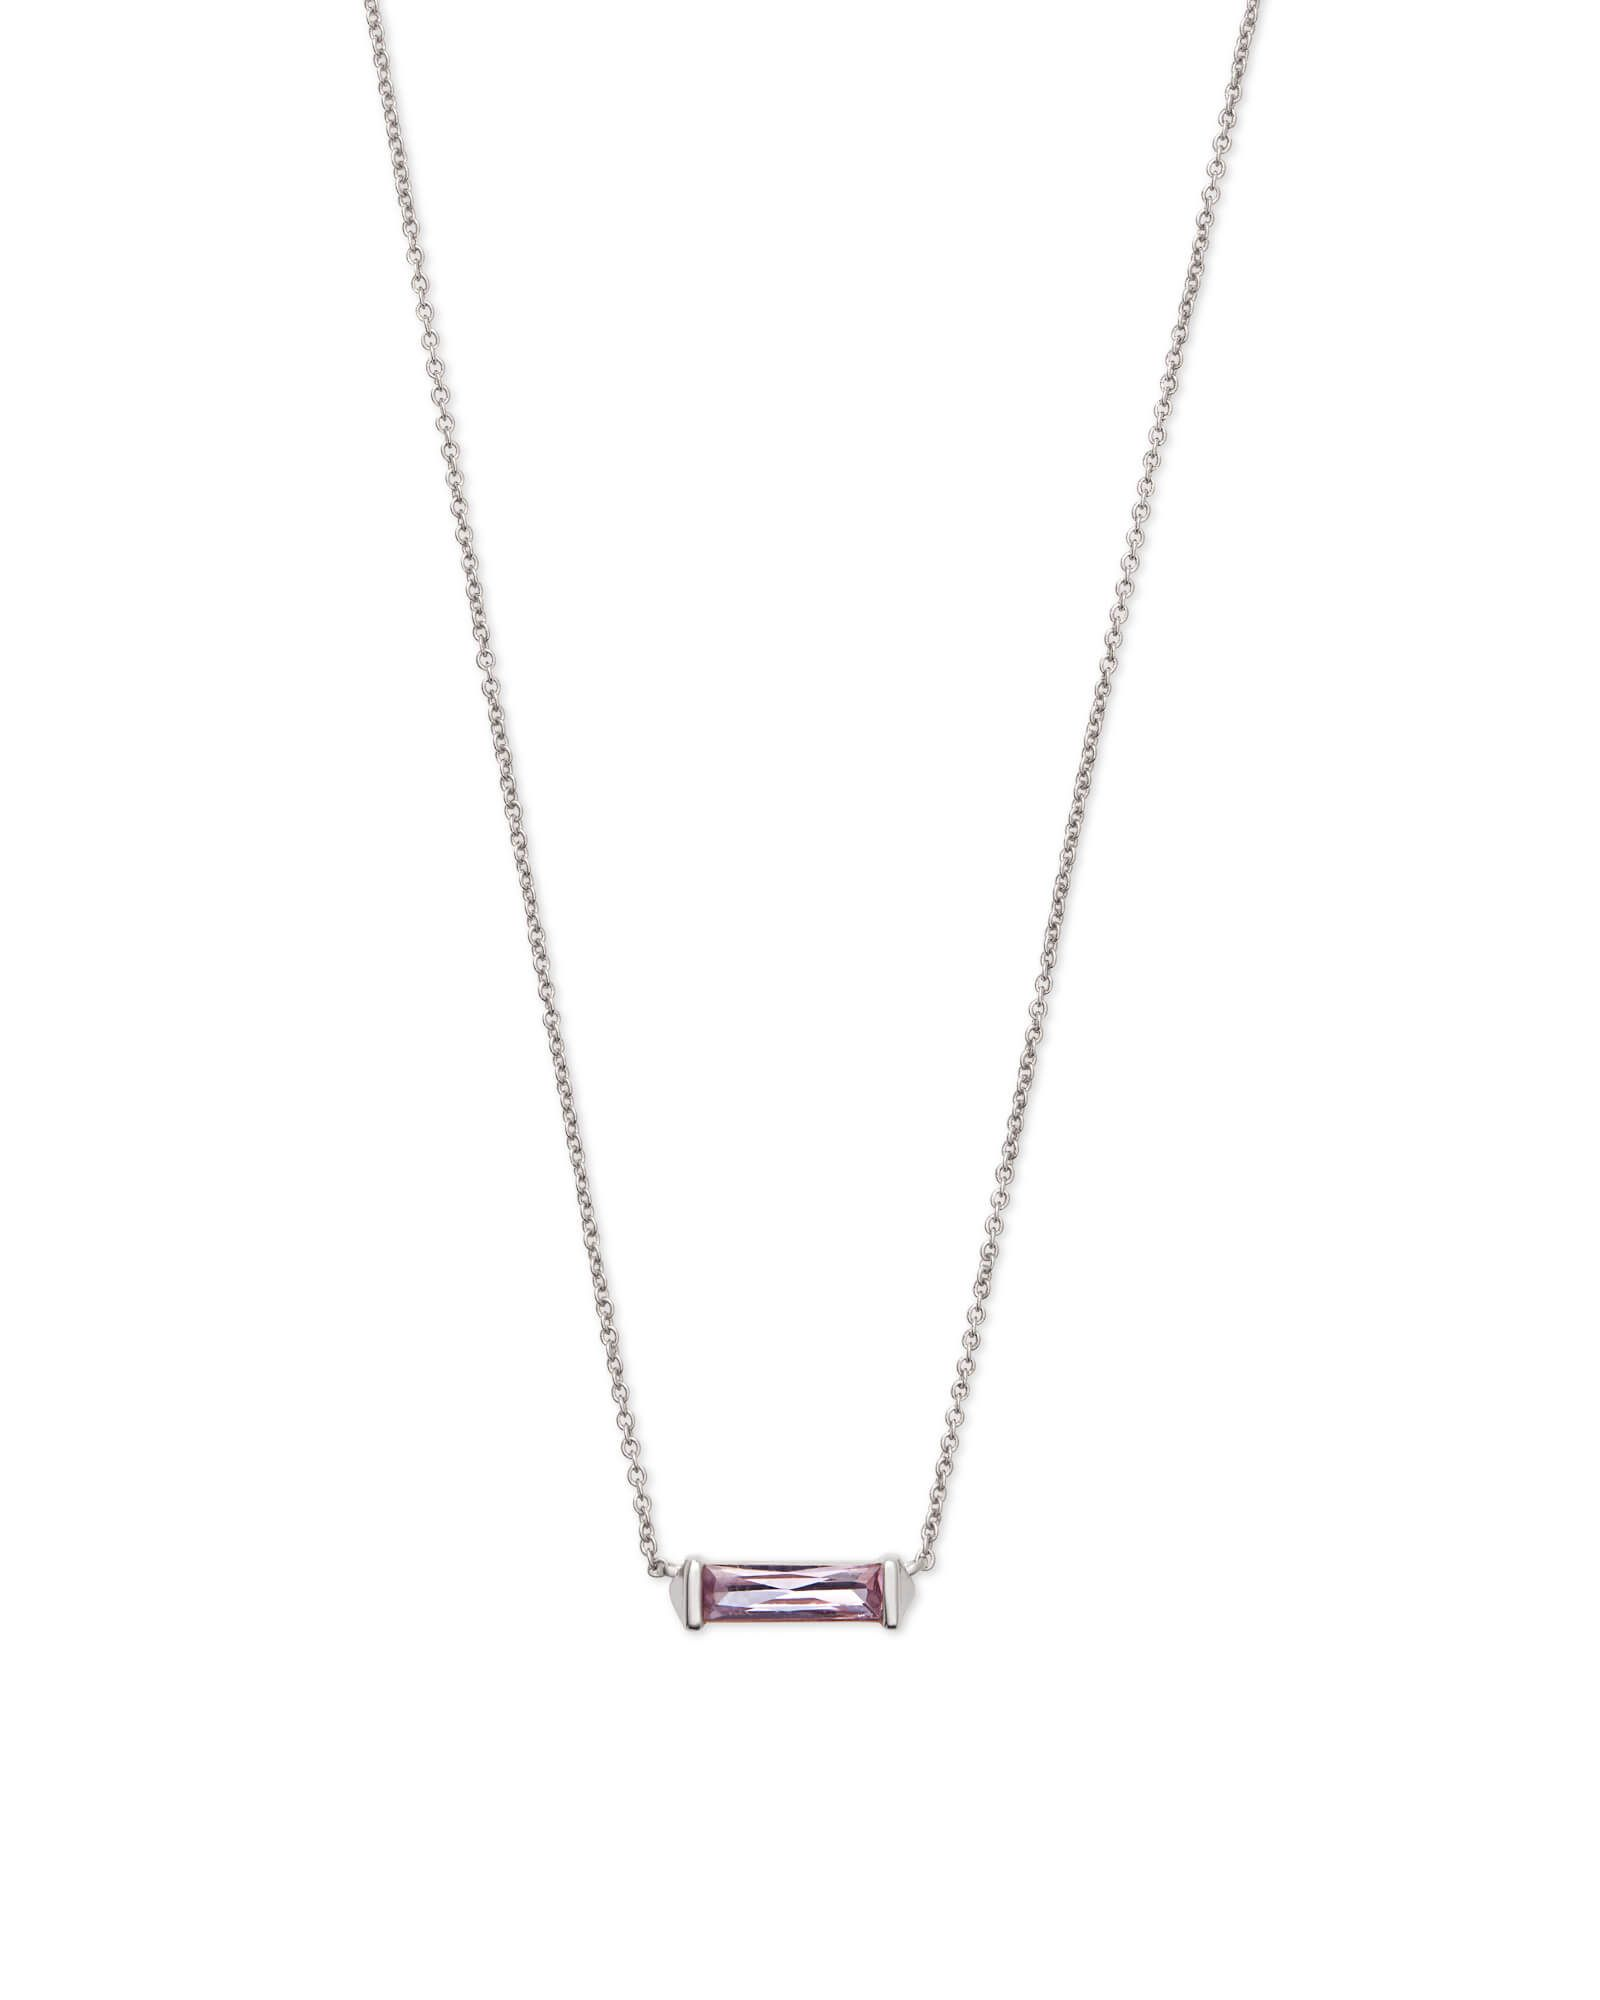 Kendra scott rufus silver pendant necklace in lilac crystal